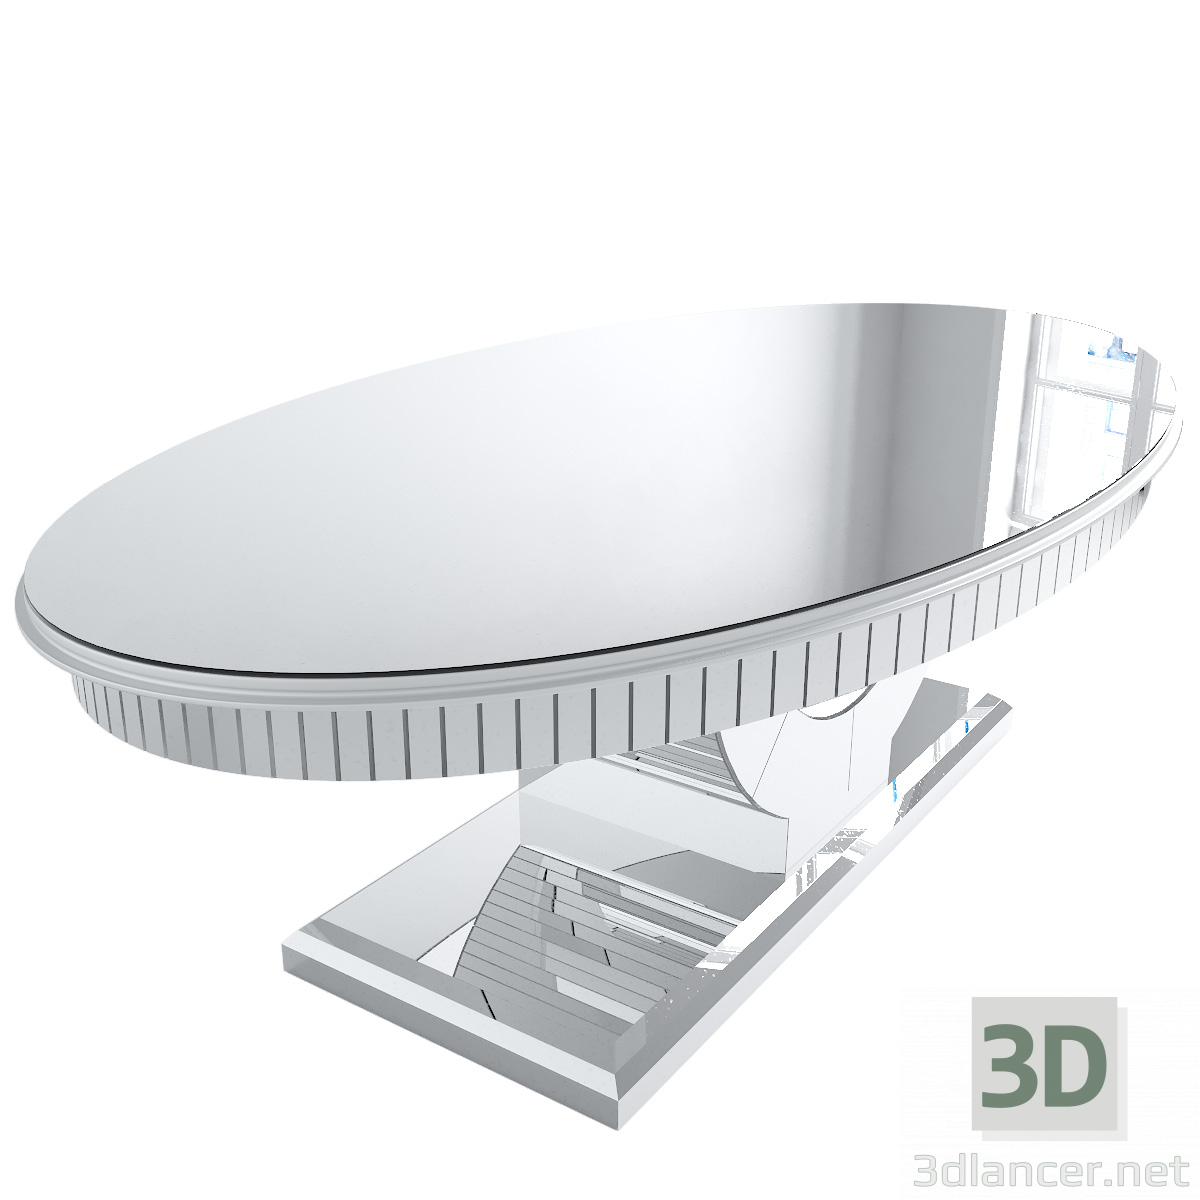 3d Oval Mirrored Dining Table model buy - render